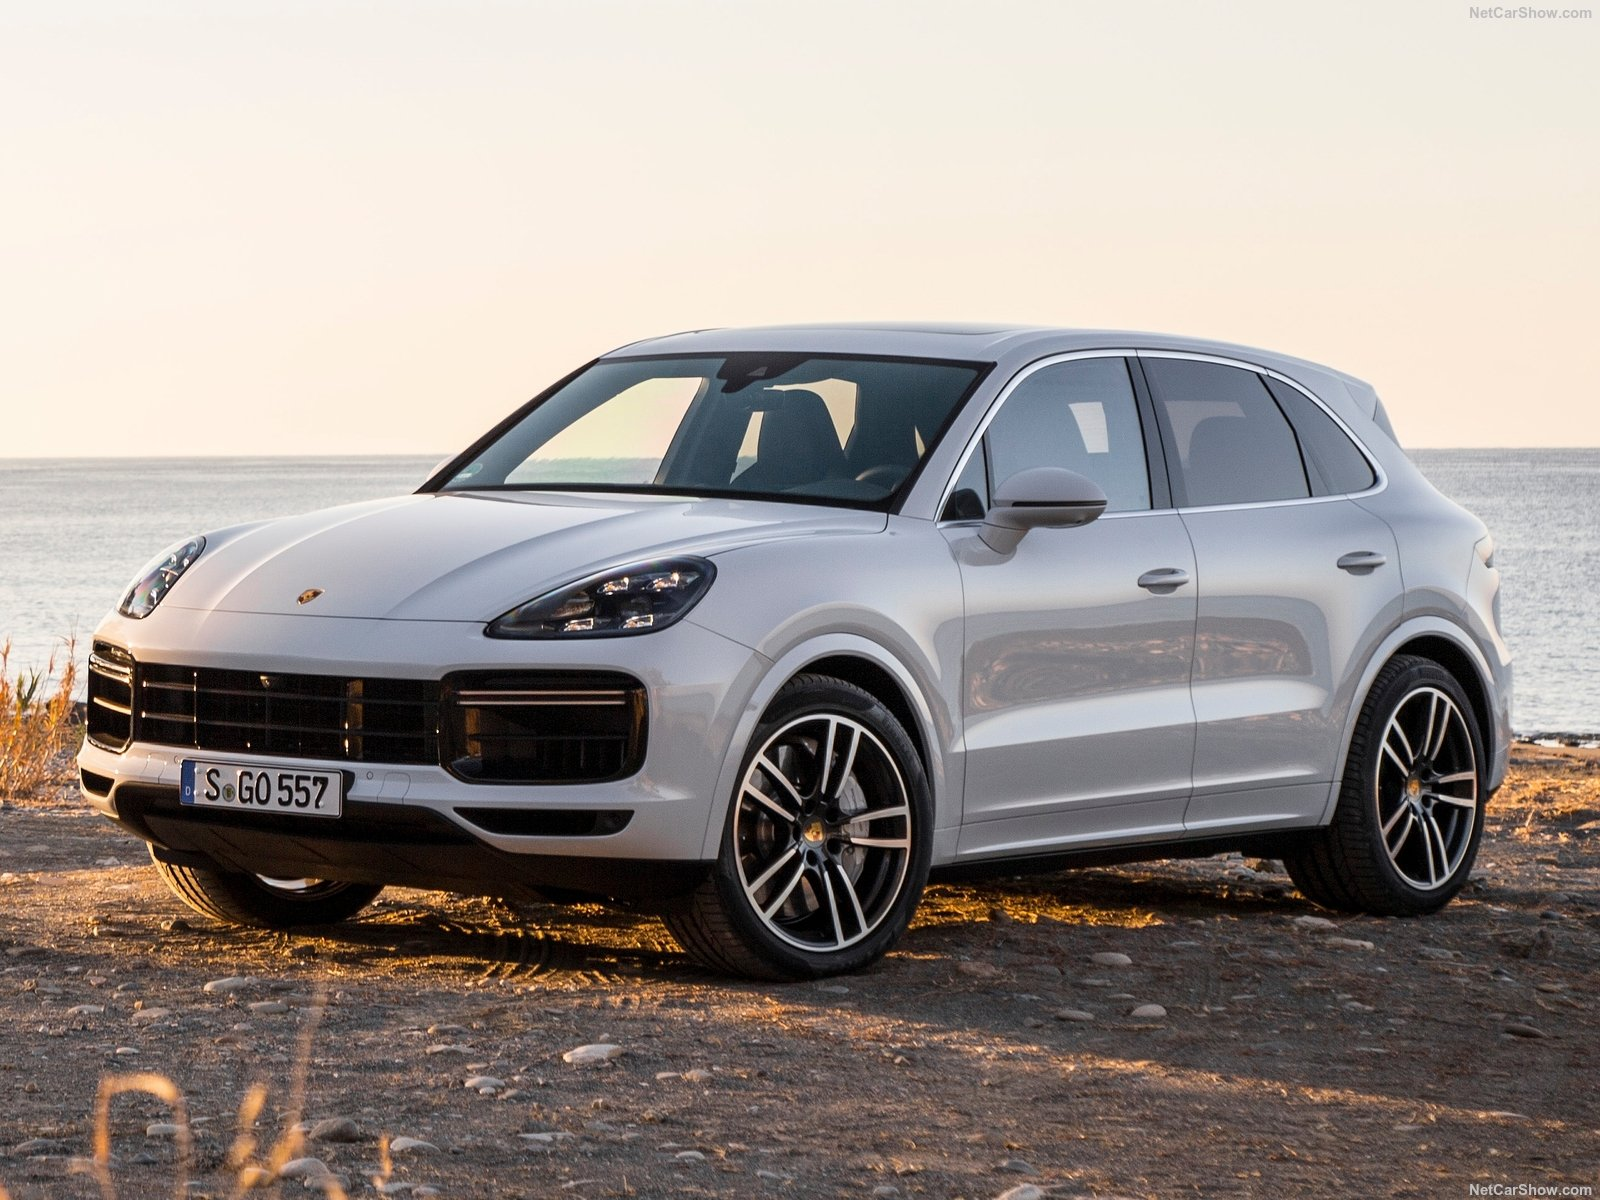 Porsche Cayenne Turbo Picture 182905 Porsche Photo HD Style Wallpapers Download free beautiful images and photos HD [prarshipsa.tk]